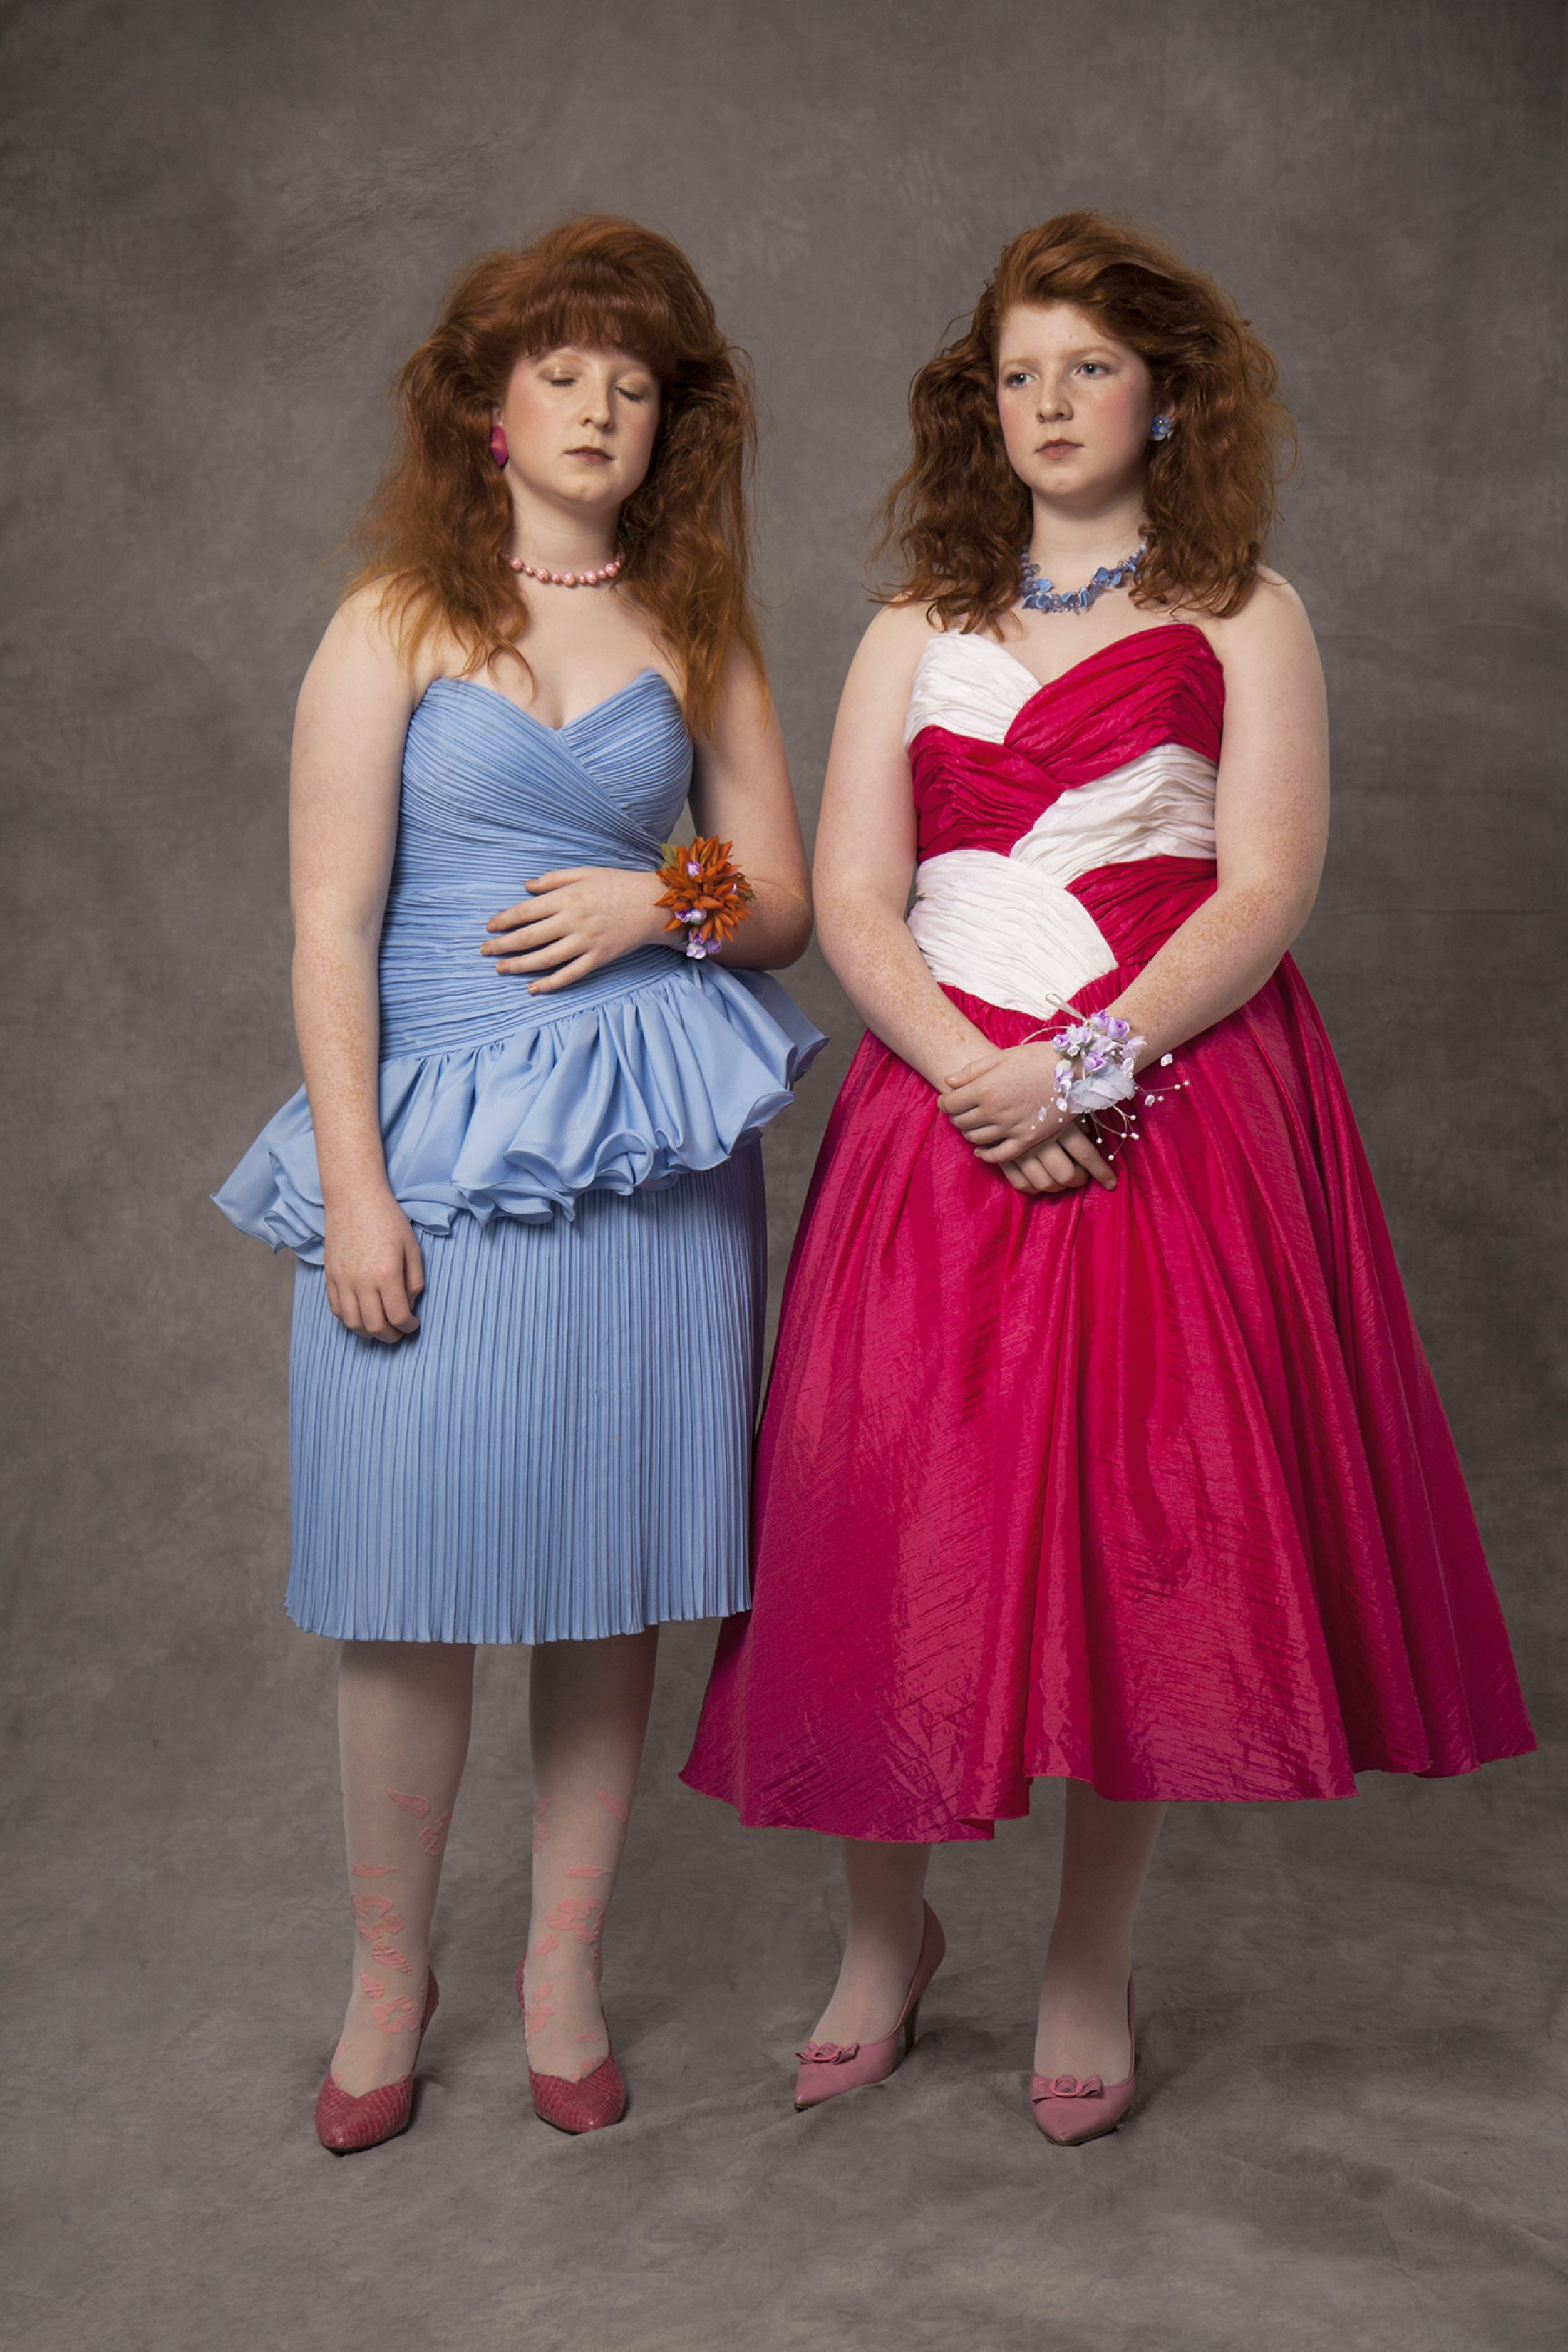 Two young girls at an 80s prom.